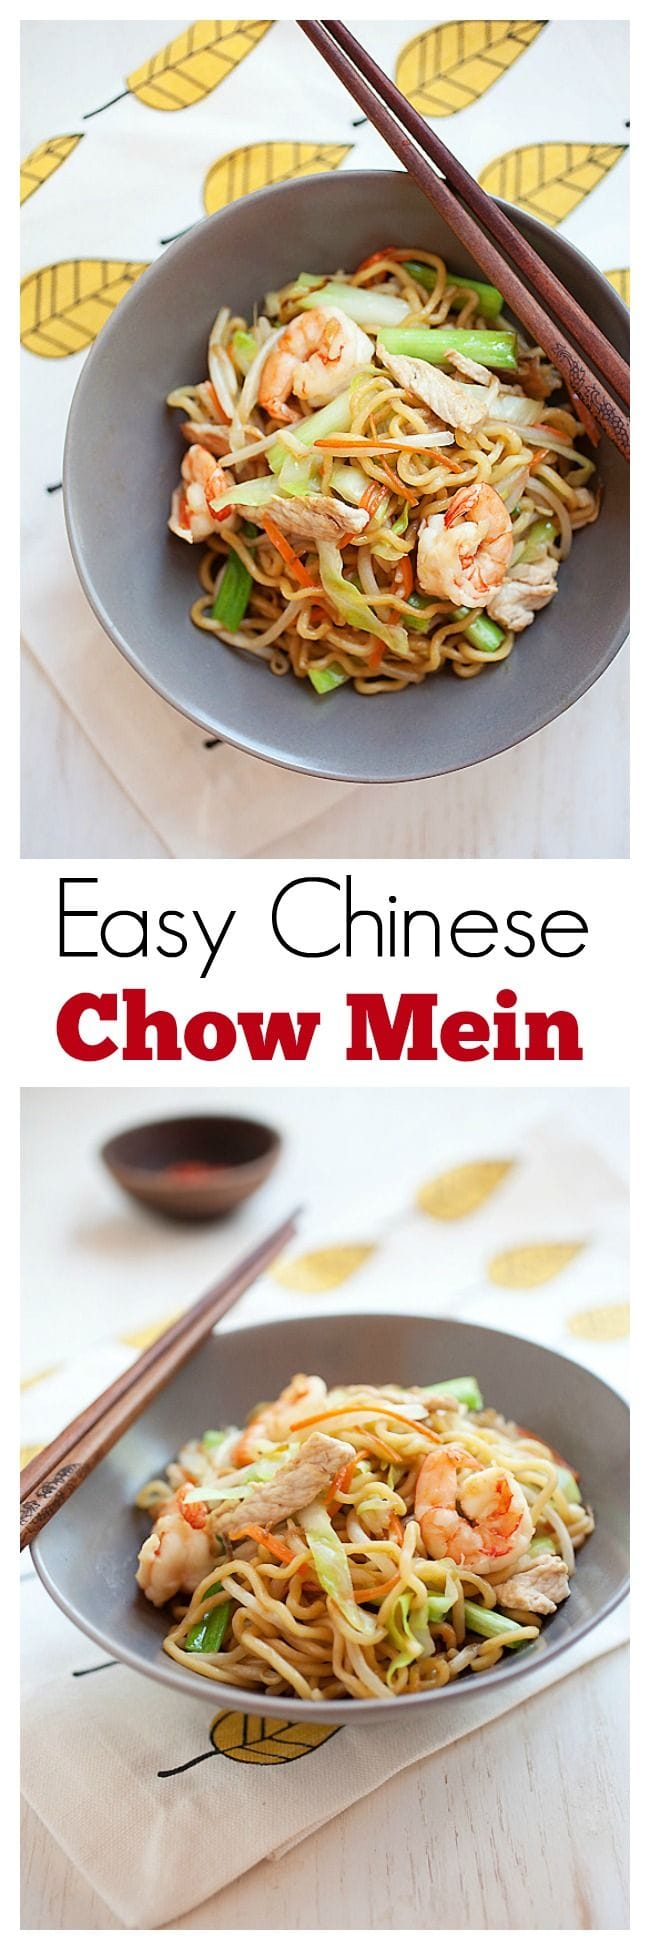 Easy Chinese Chow Mein - quick, delicious and healthy recipe that is MUCH better than takeout. Learn how to make it | rasamalaysia.com